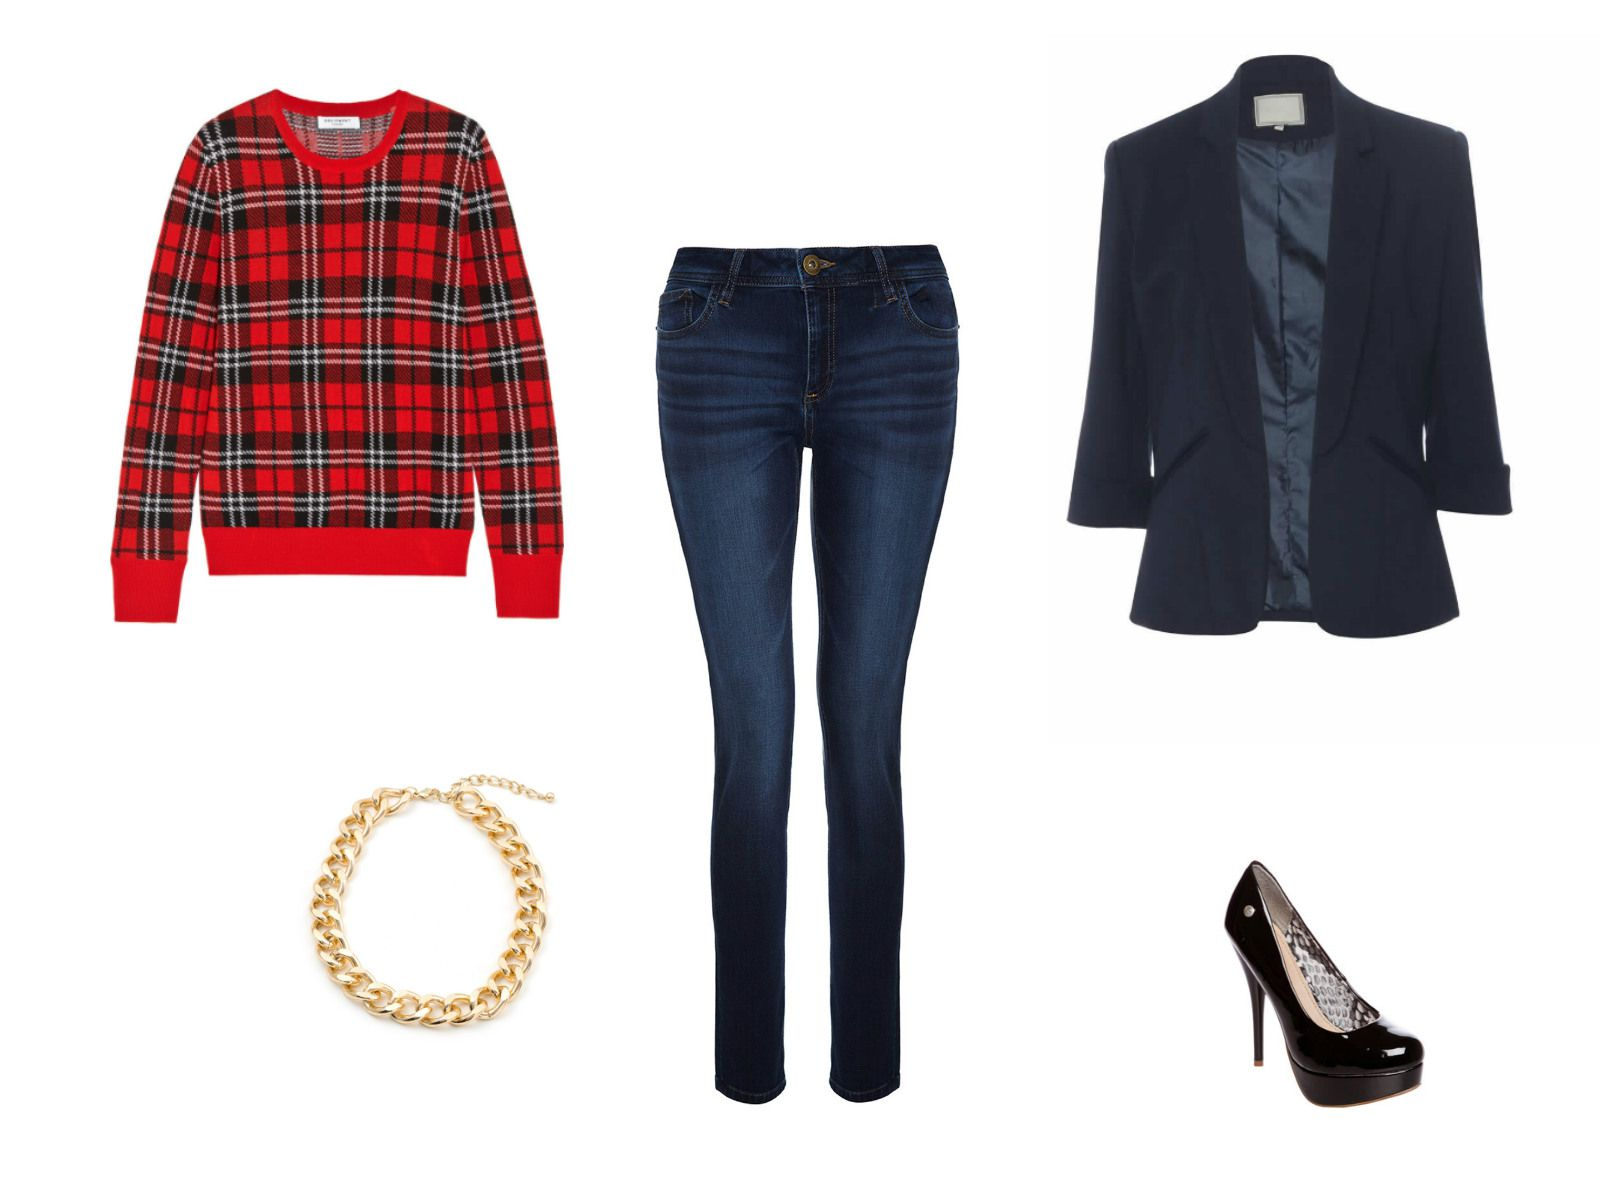 Jeans and a plaid sweater